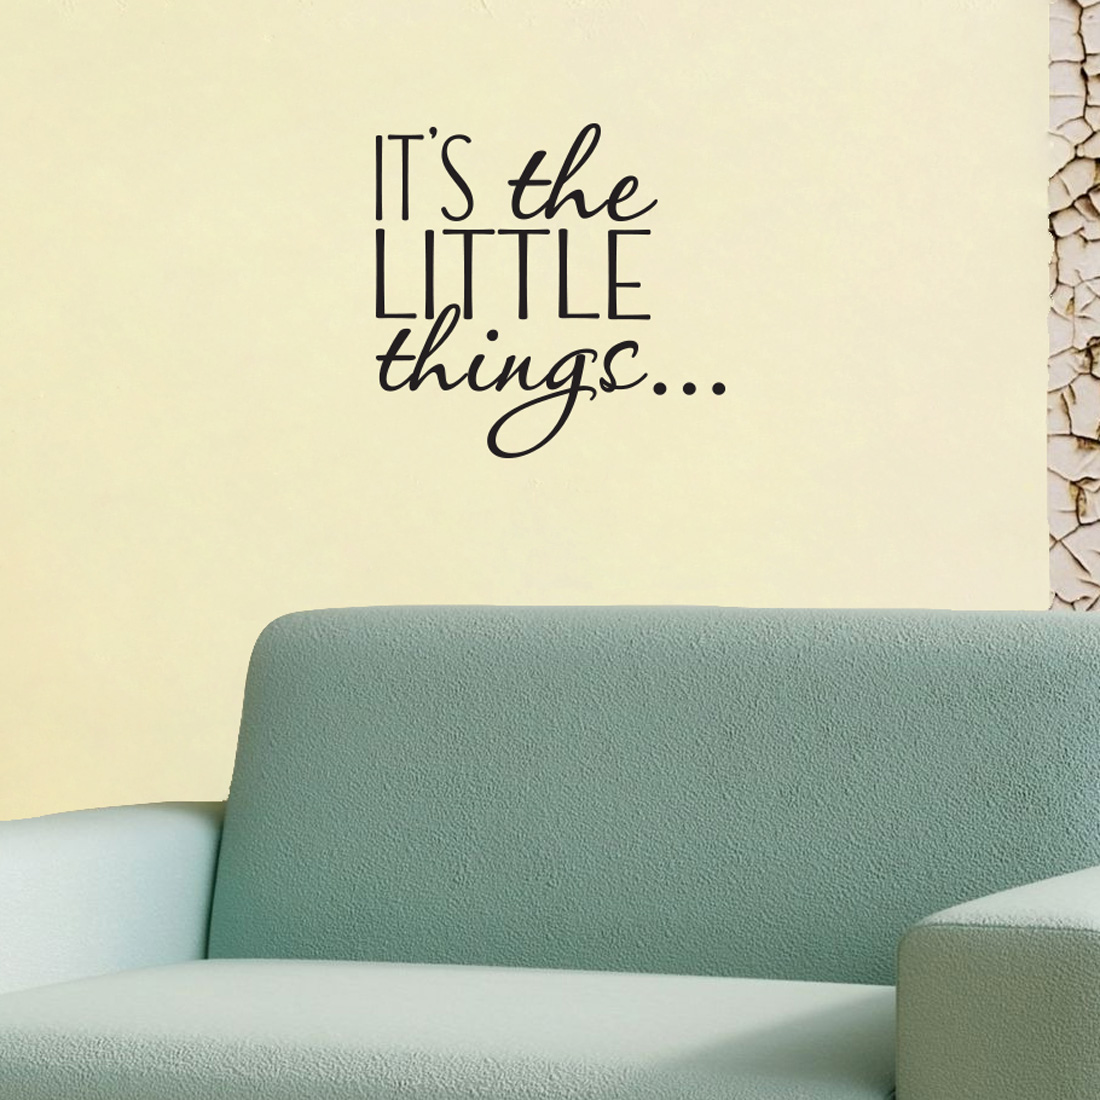 It's The Little Things... - Wall Decal